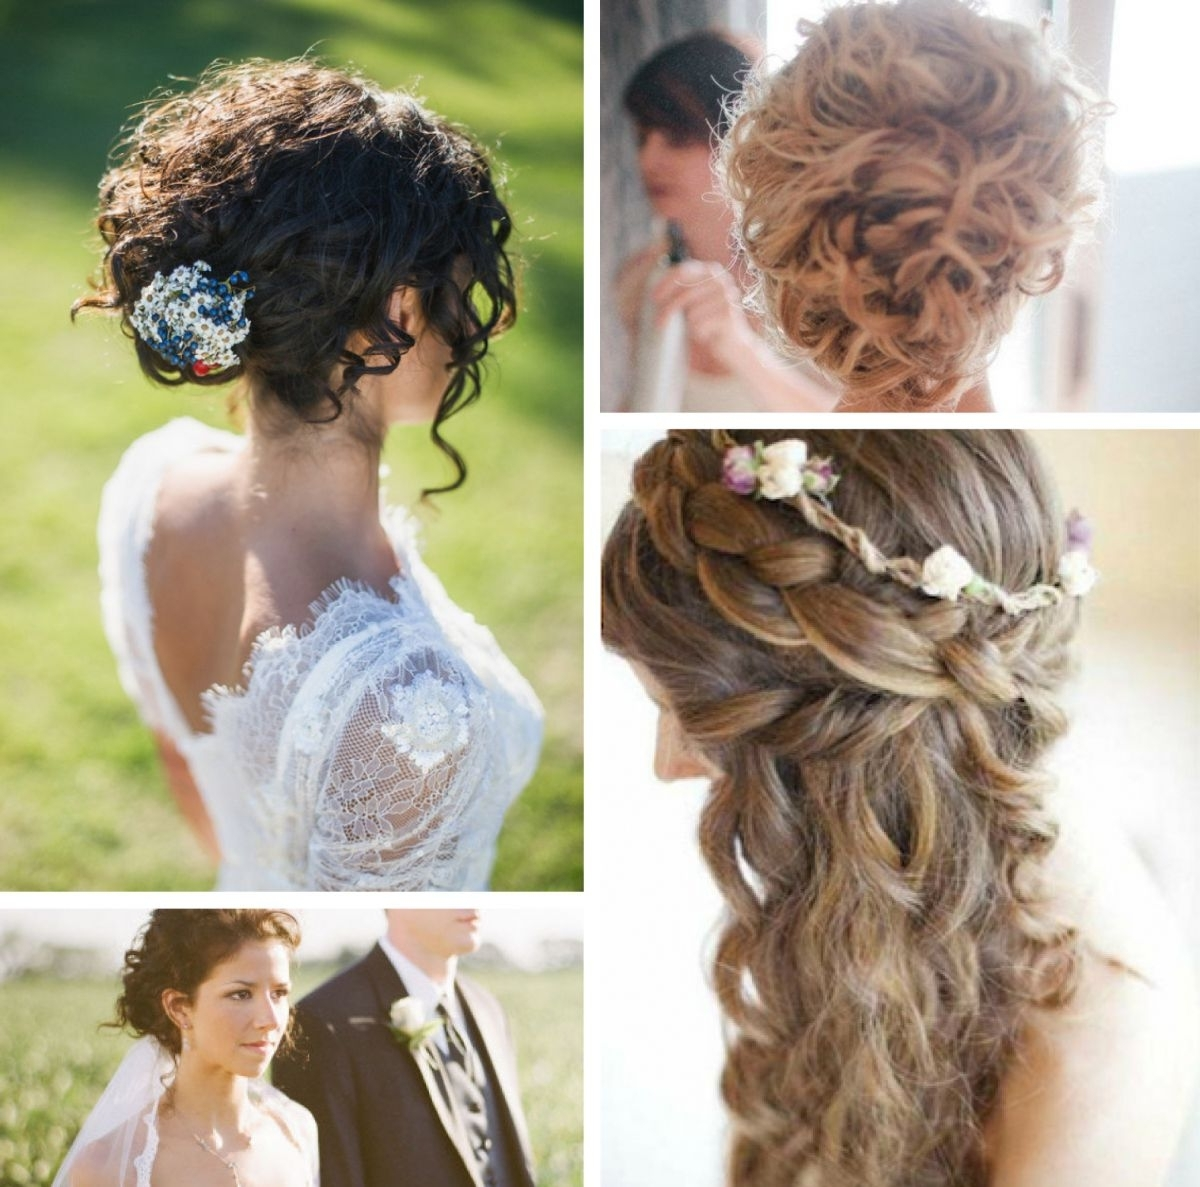 Preferred Wedding Hairstyles For Short Natural Curly Hair Intended For Best Wedding Hairstyles For Naturally Curly Hair Off The Page Pic Of (View 11 of 15)